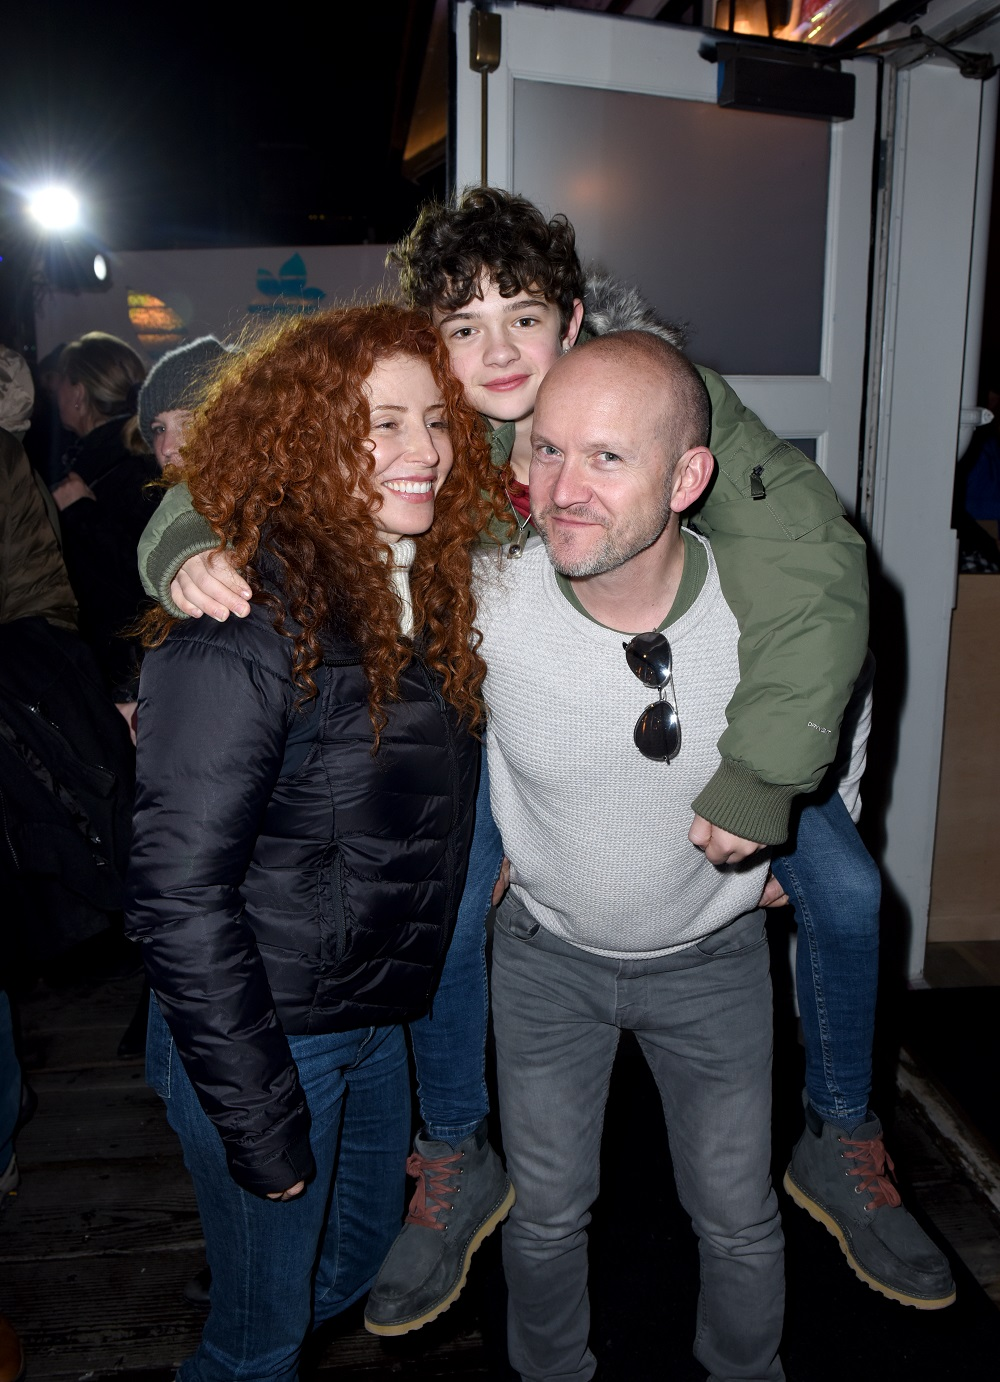 (L-R) Alma Ha'rel, Noah Jupe, and Chris Jupe